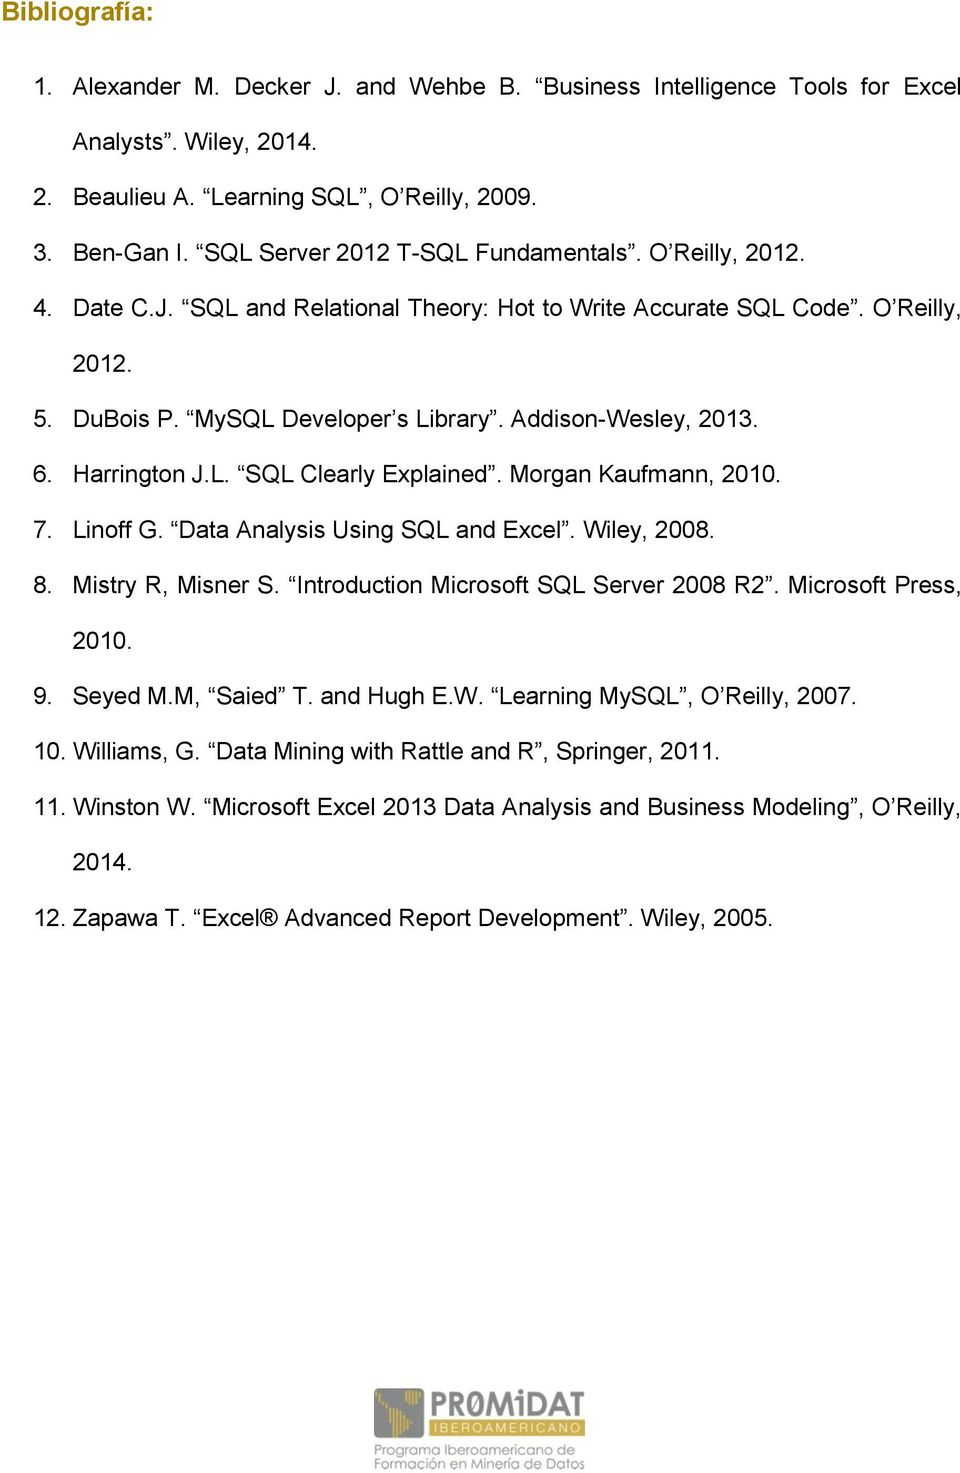 Addison-Wesley, 2013. 6. Harrington J.L. SQL Clearly Explained. Morgan Kaufmann, 2010. 7. Linoff G. Data Analysis Using SQL and Excel. Wiley, 2008. 8. Mistry R, Misner S.